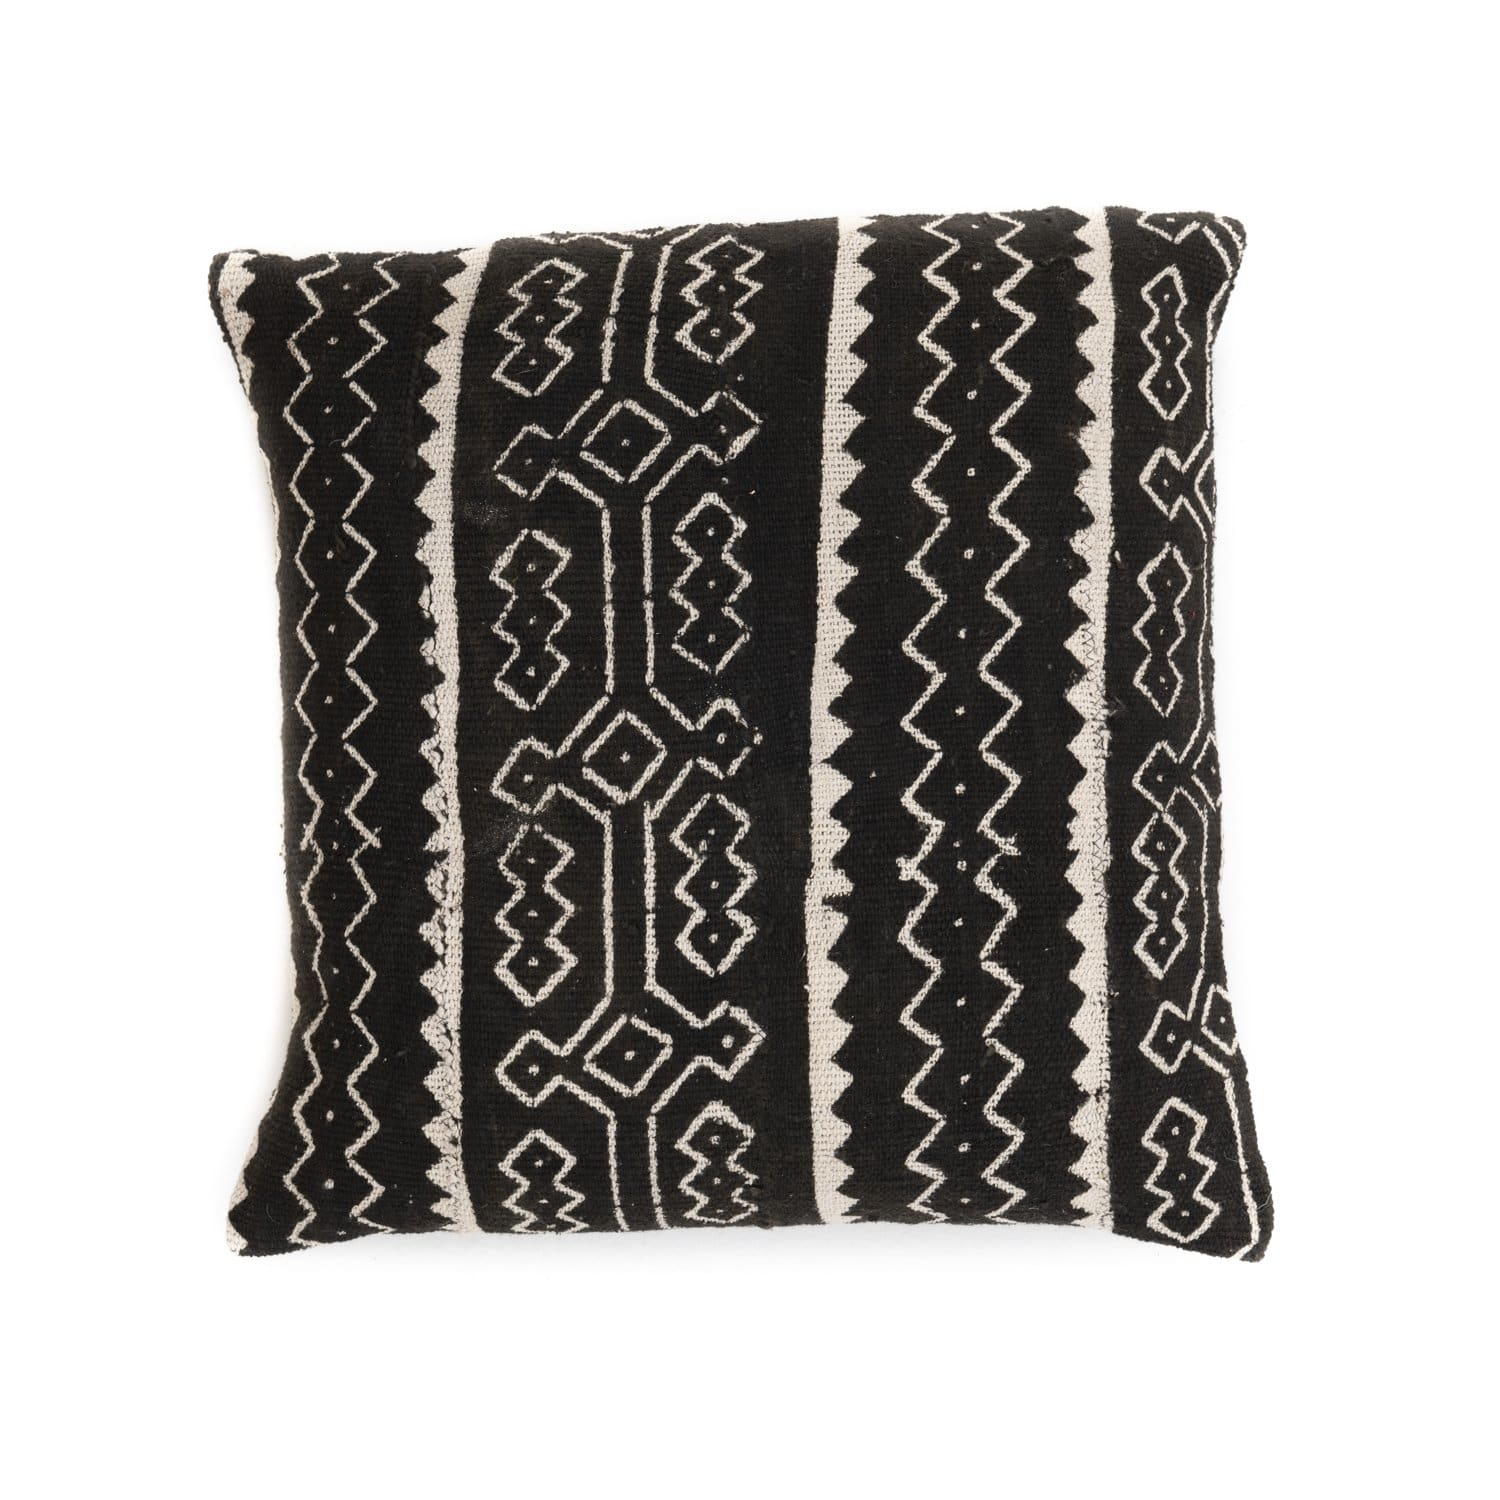 African mudcloth Pillow Cover - Moroccan Furniture